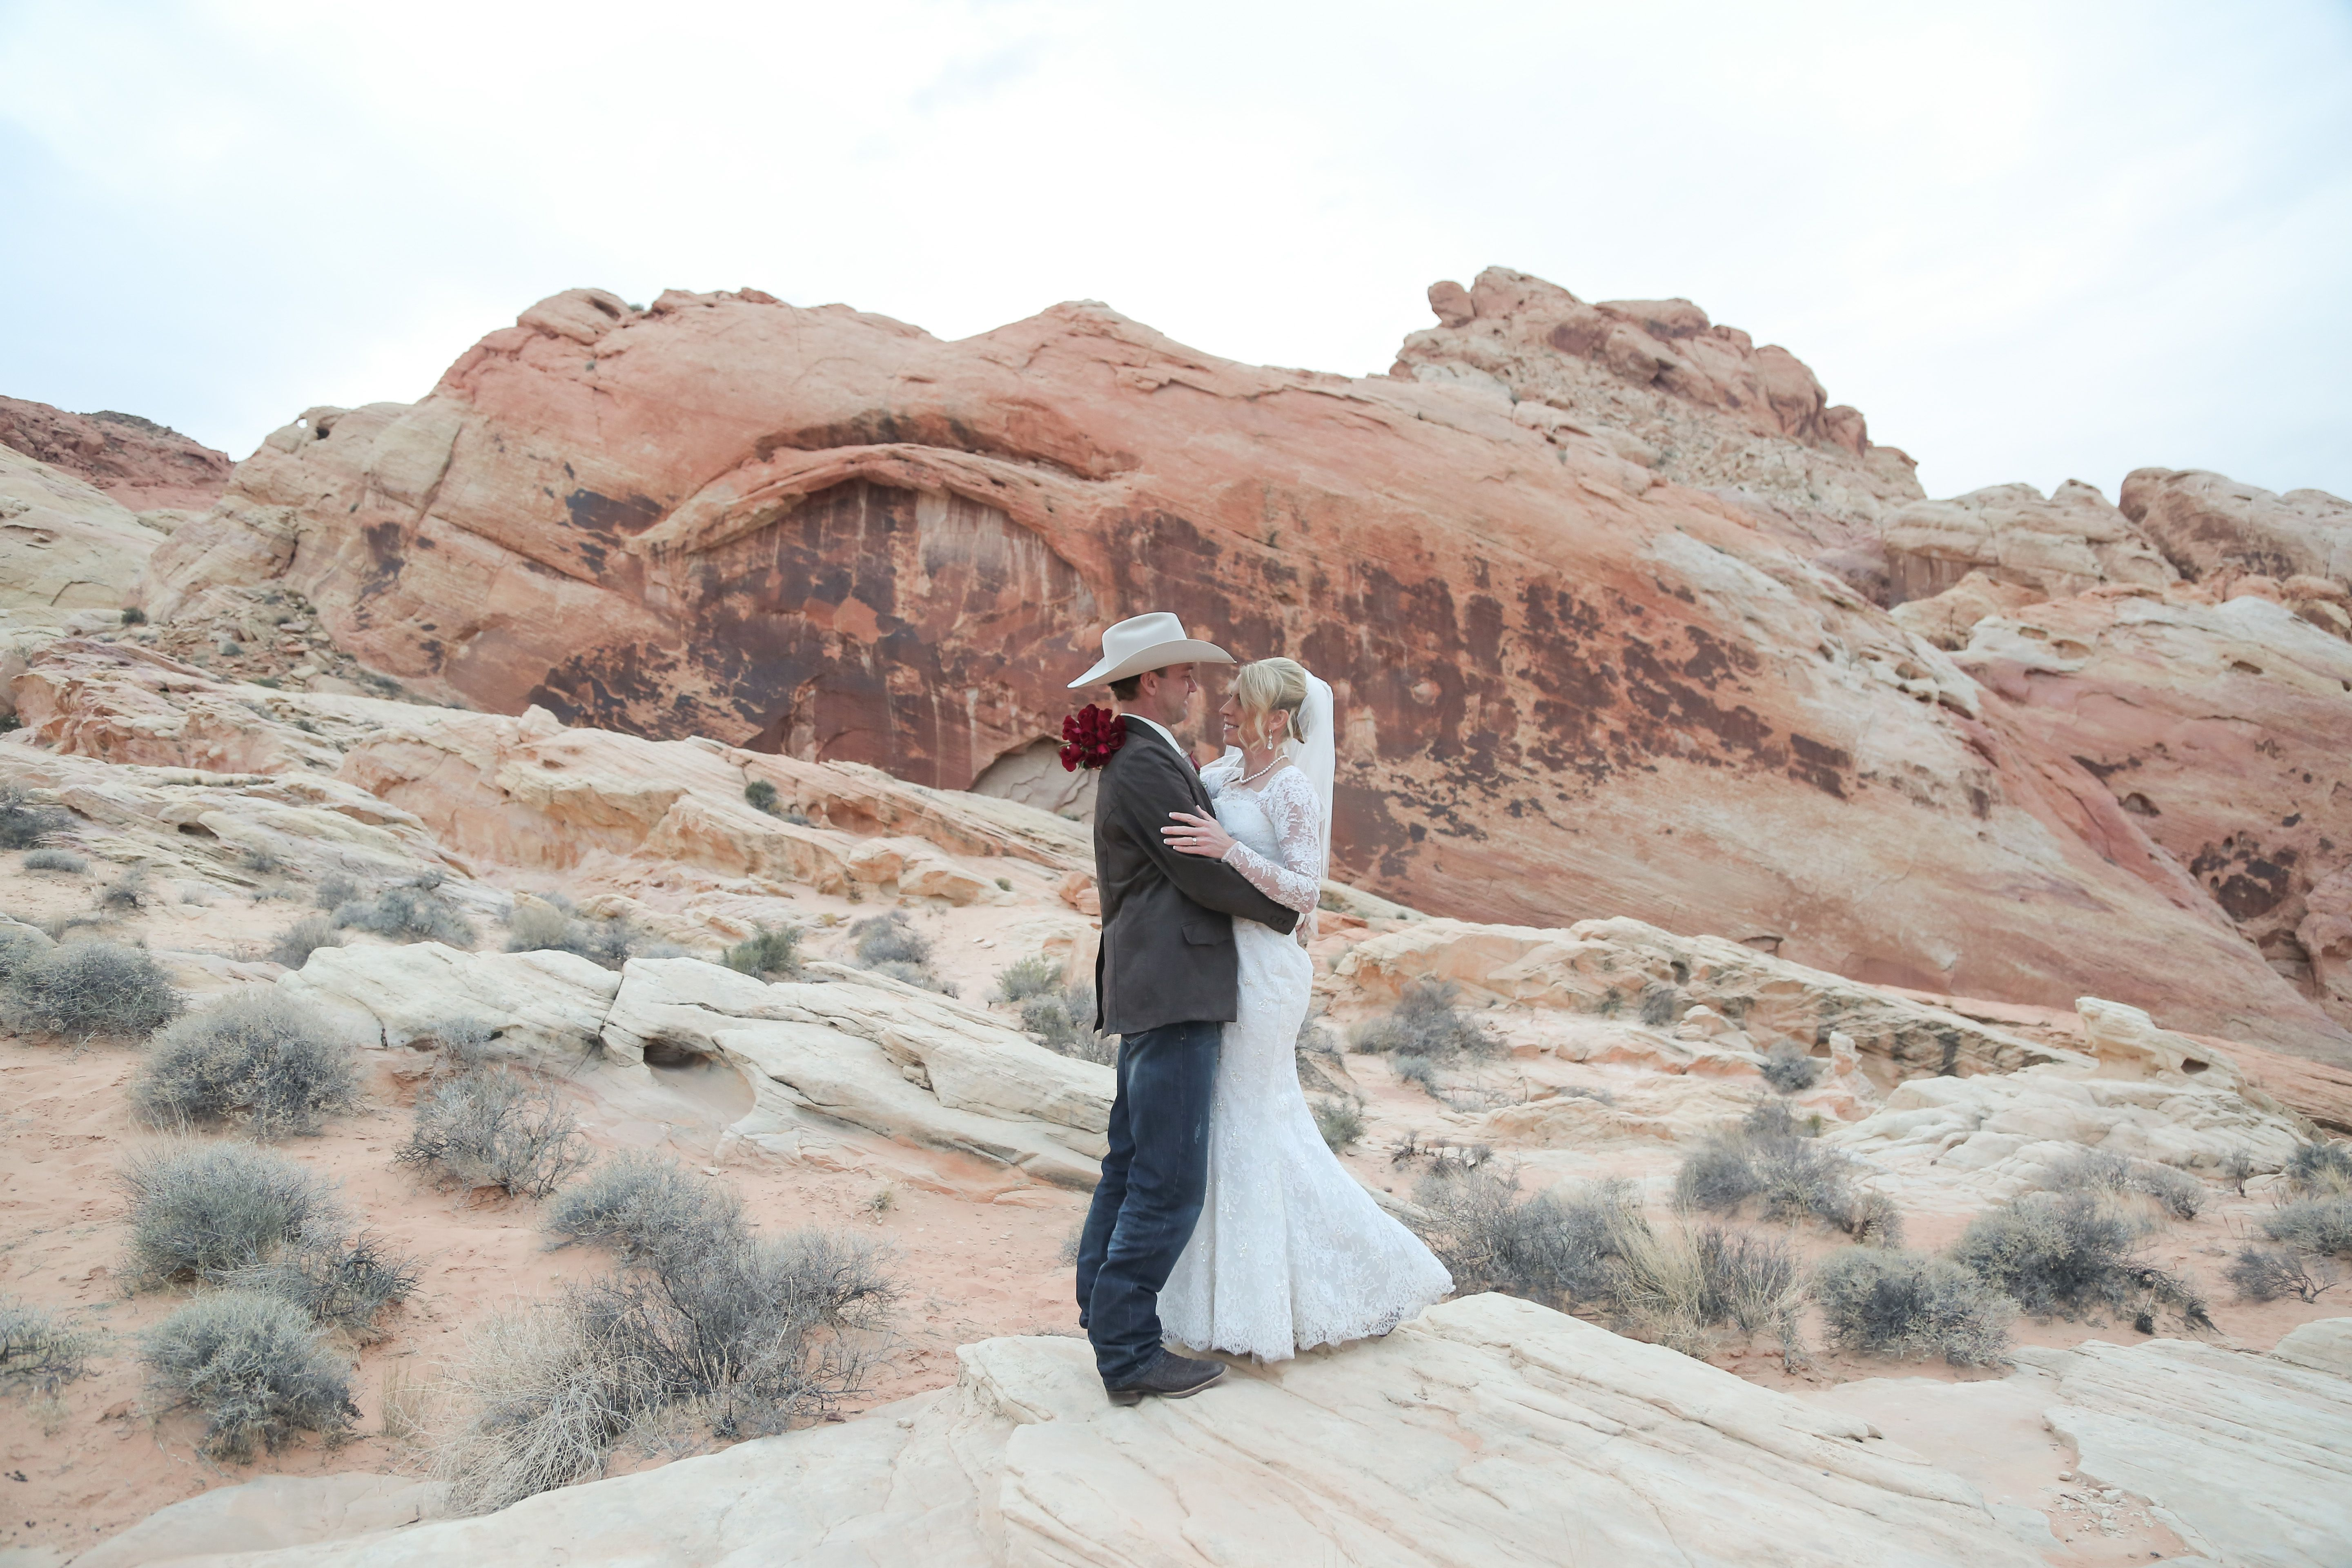 Epic Desert Wedding At Valley Of Fire Near Las Vegas Rustic And Western Weddings Are Huge Trends Why Not Take Them To The West With A Destination